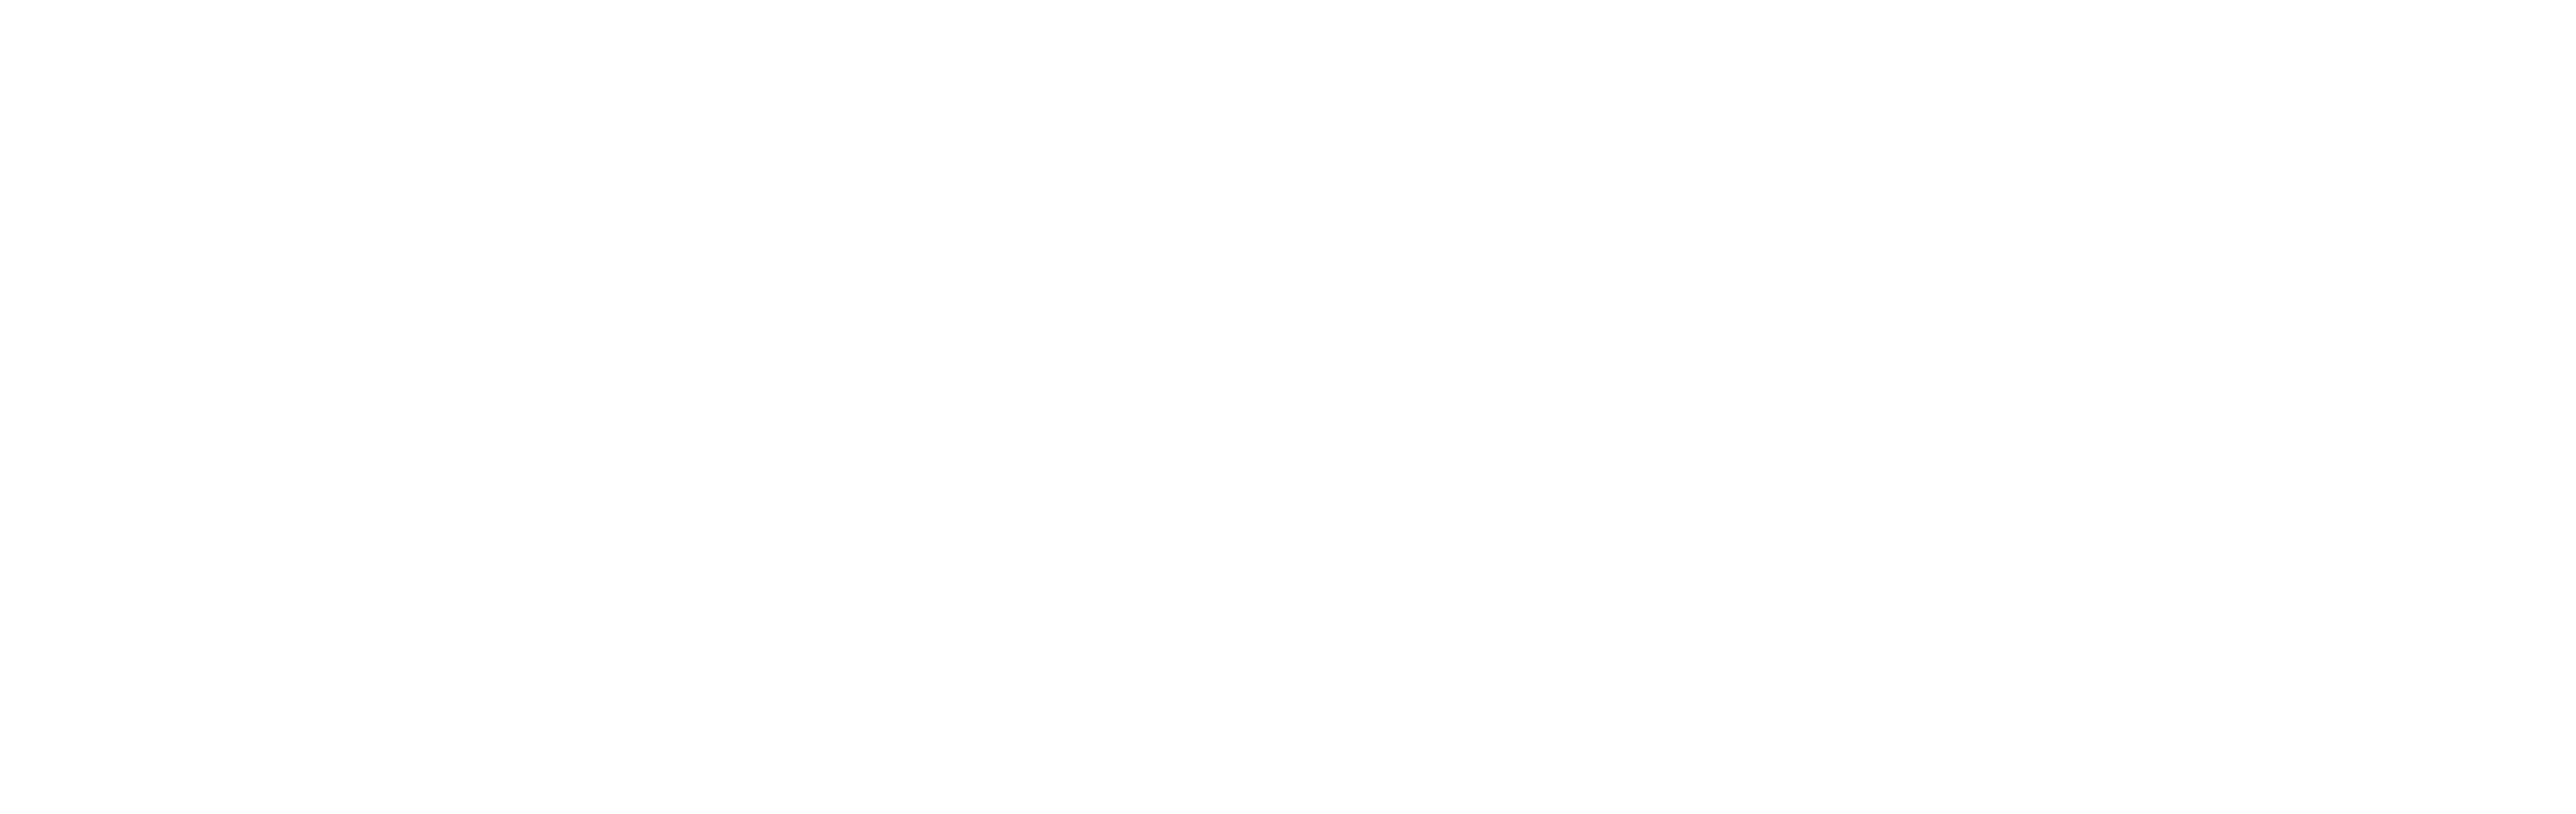 Mystic Garden Floral - Flower Delivery in Williamsport, PA